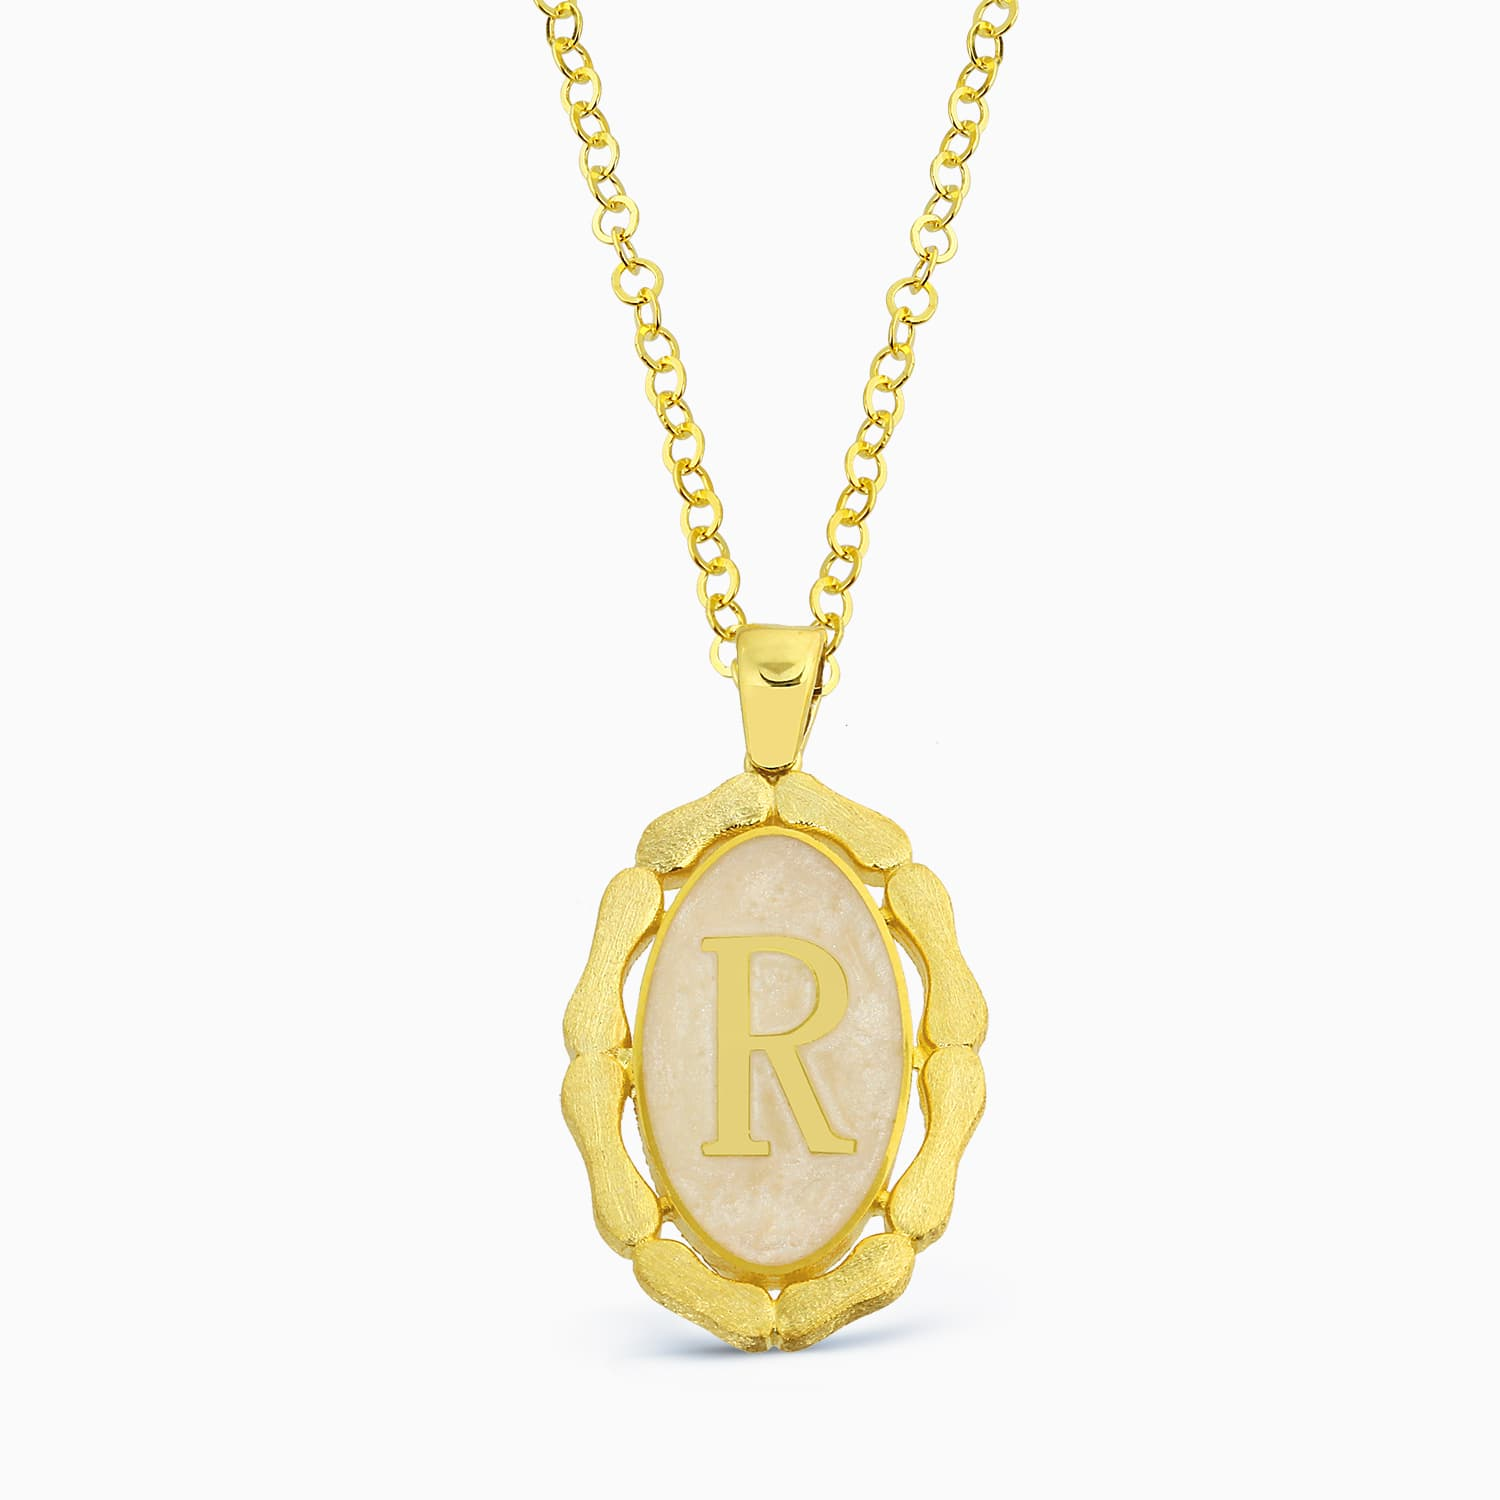 LETTER R MINNED NECKLACE